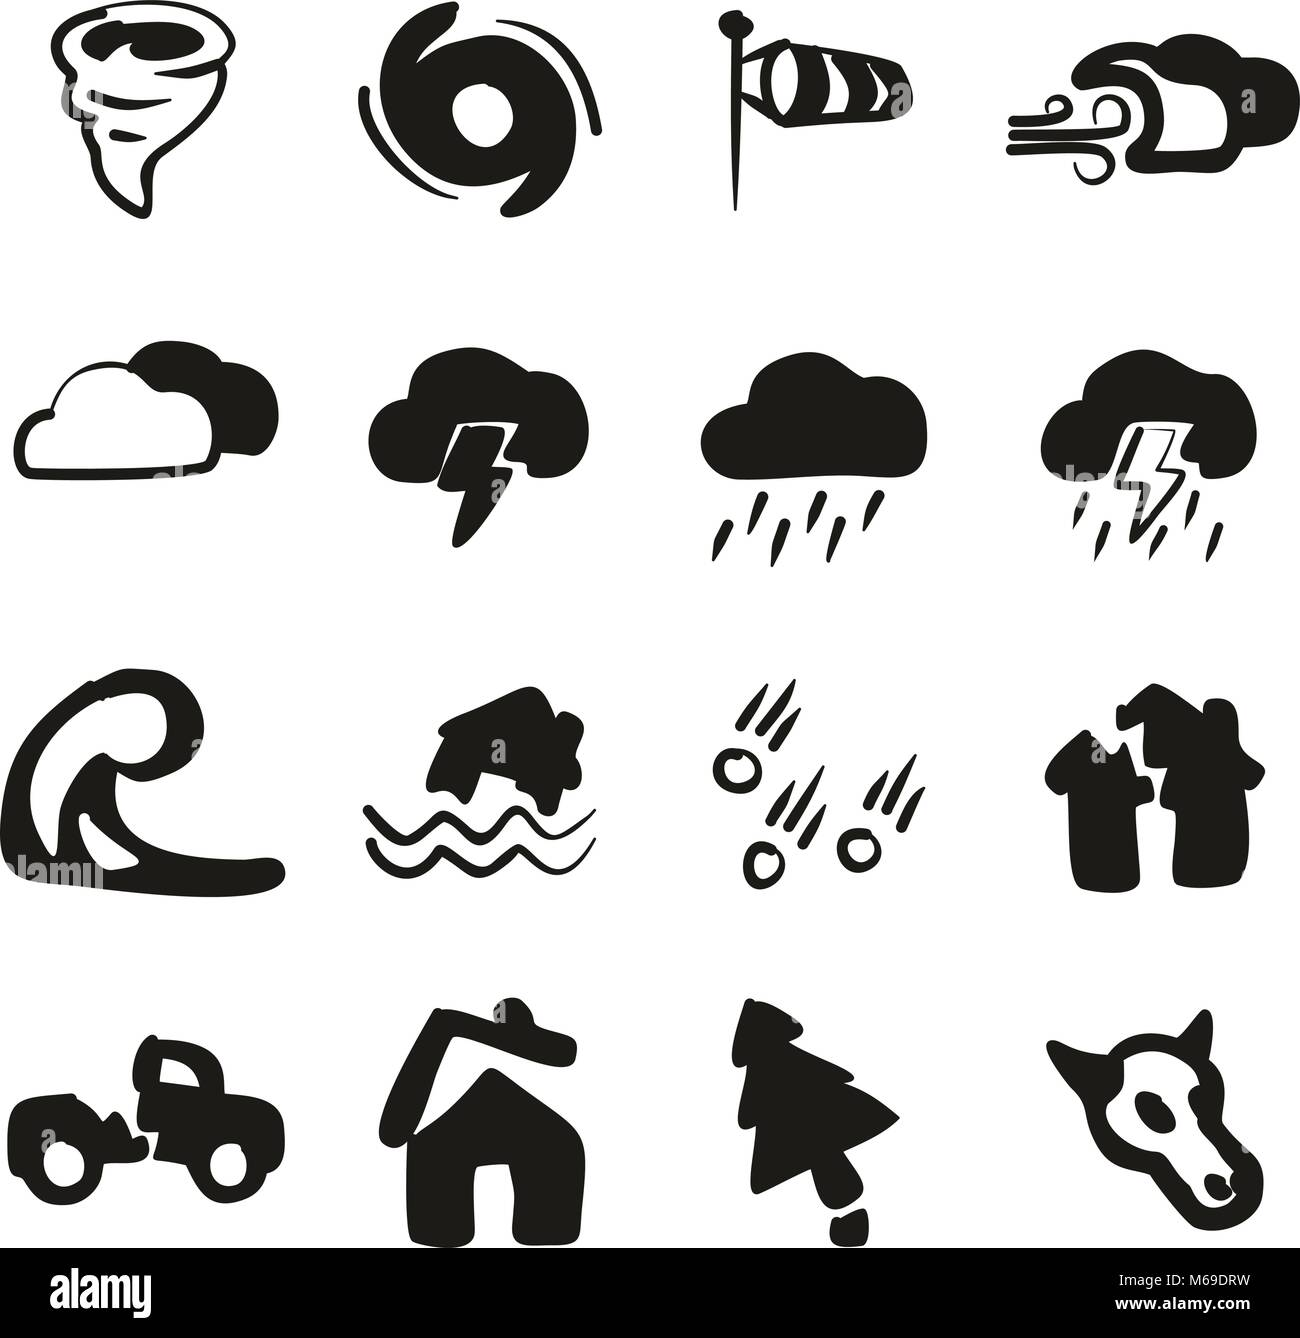 Tornado Icons Freehand Fill - Stock Vector